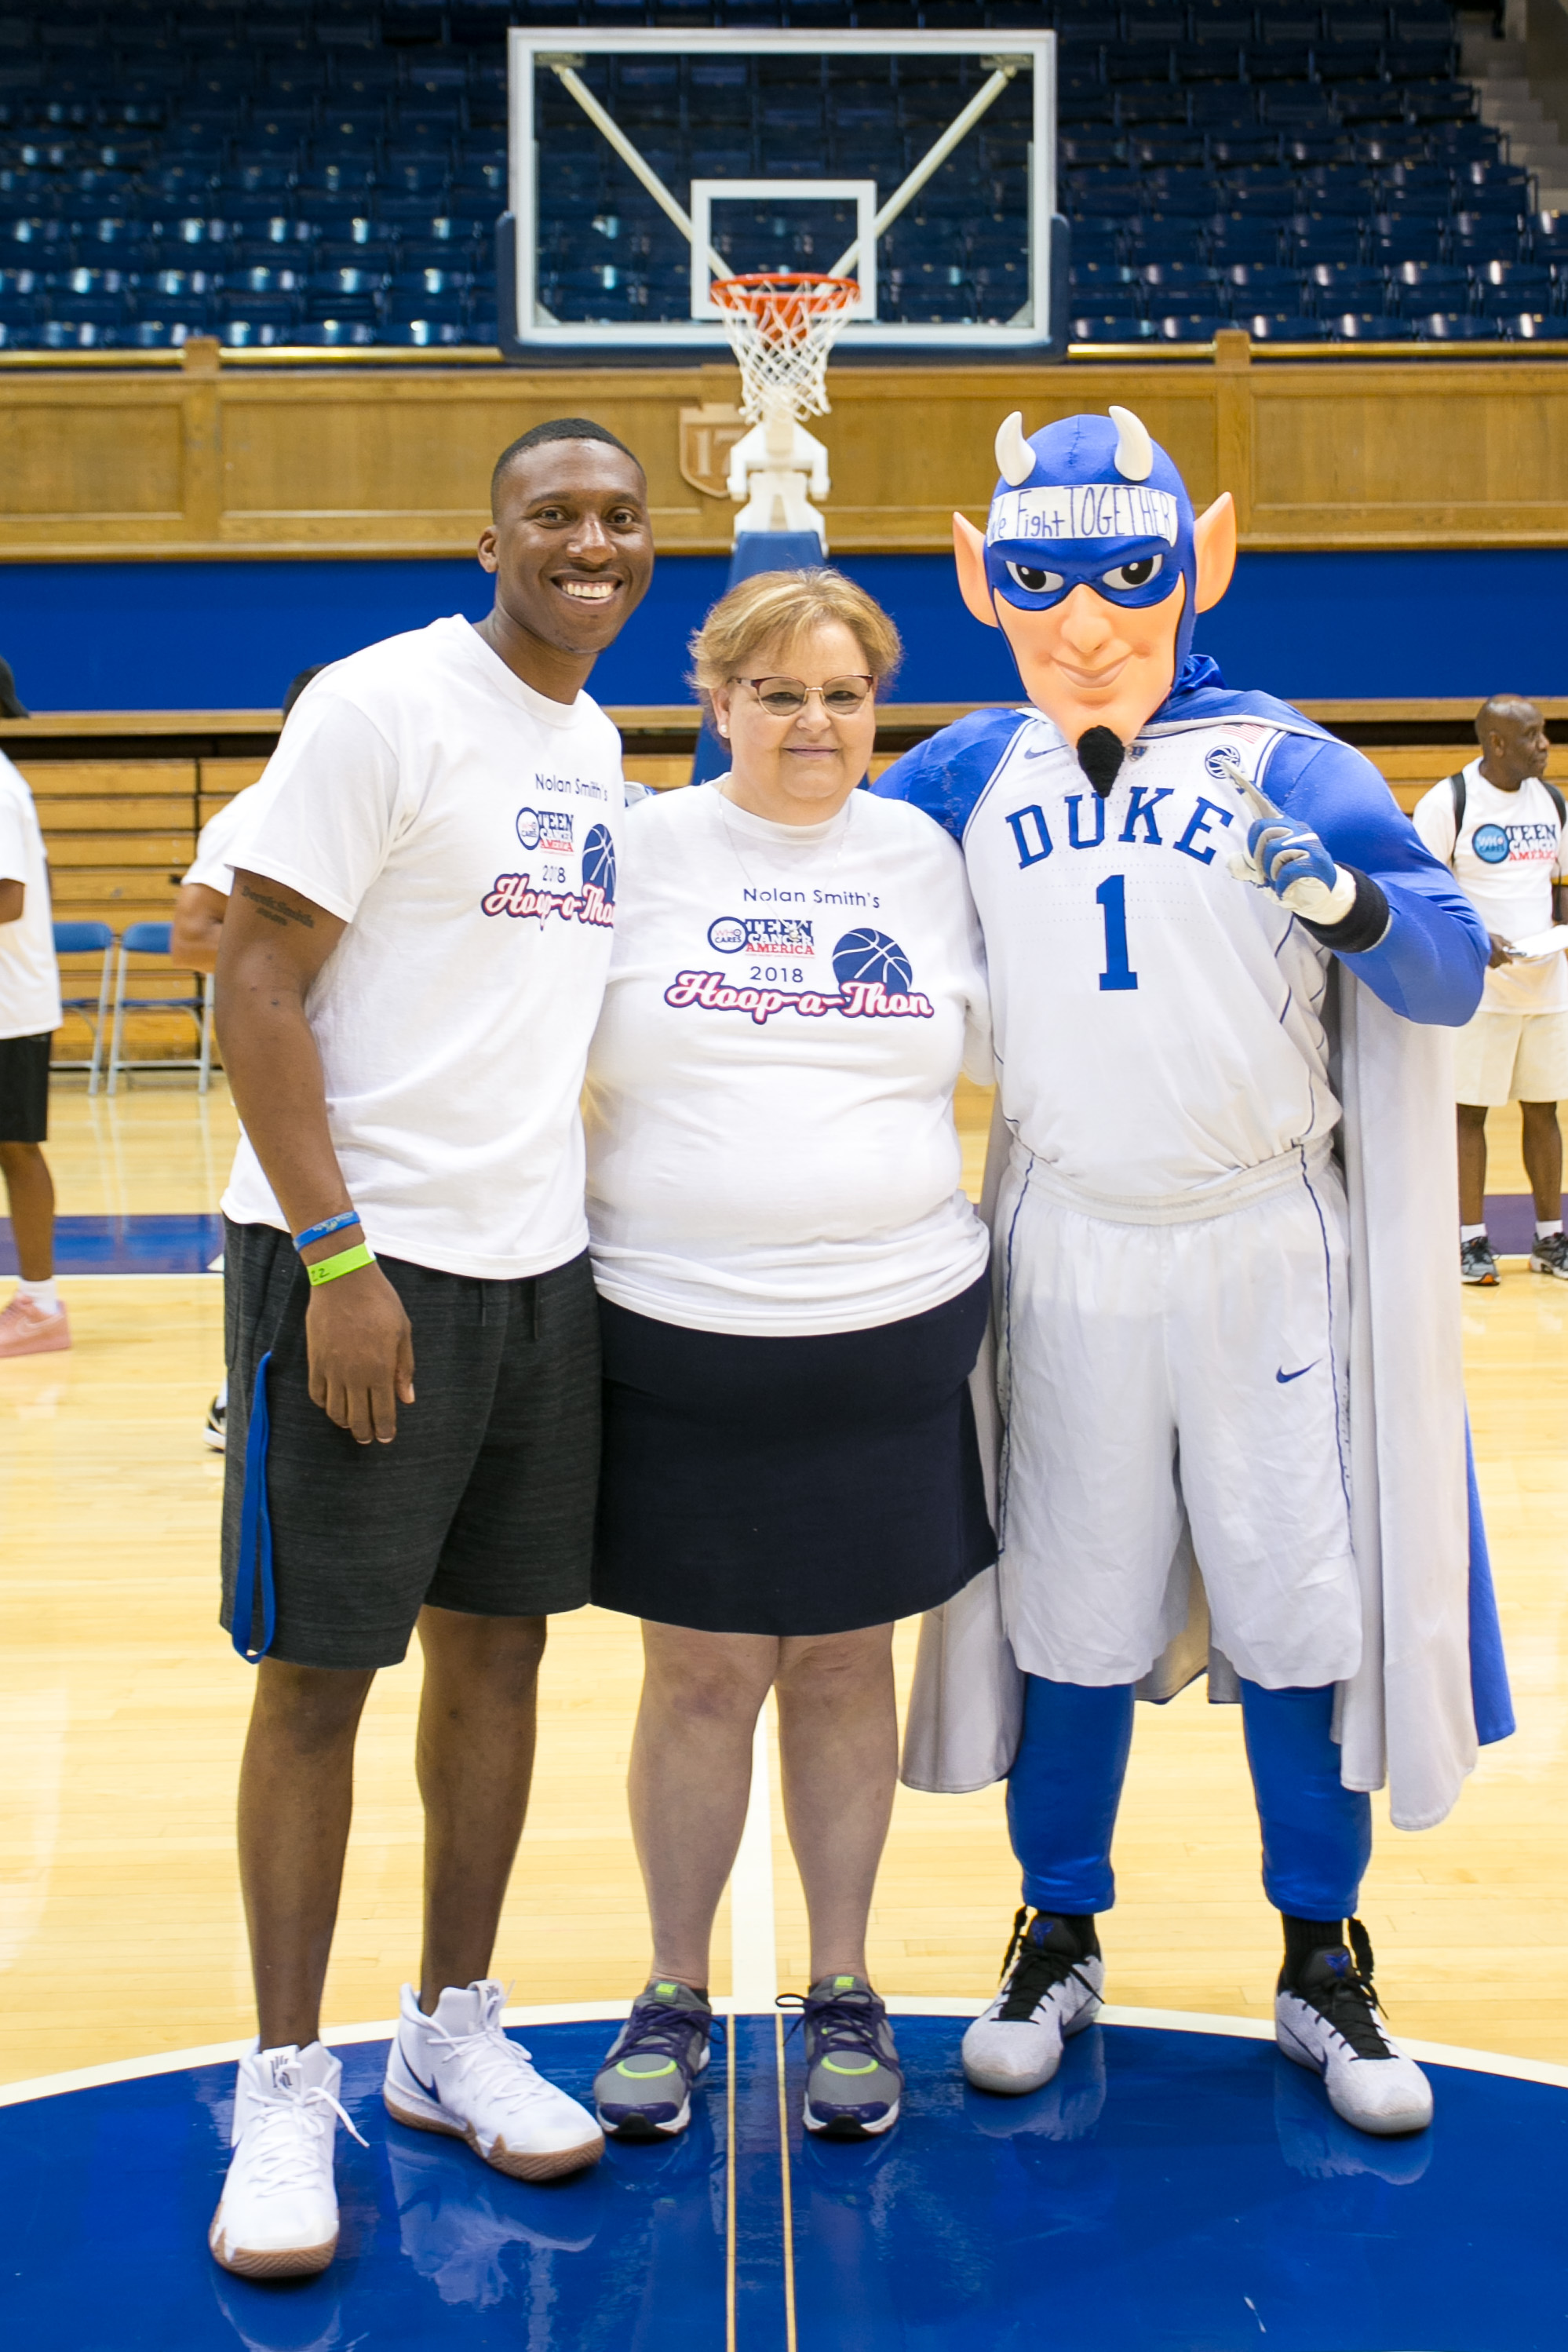 Duke_Men's_Basketball_Hoop_A_Thon_for_Teen_Cancer_America_20180826_photo_by_Justin_Kase_Conder_0021.jpg